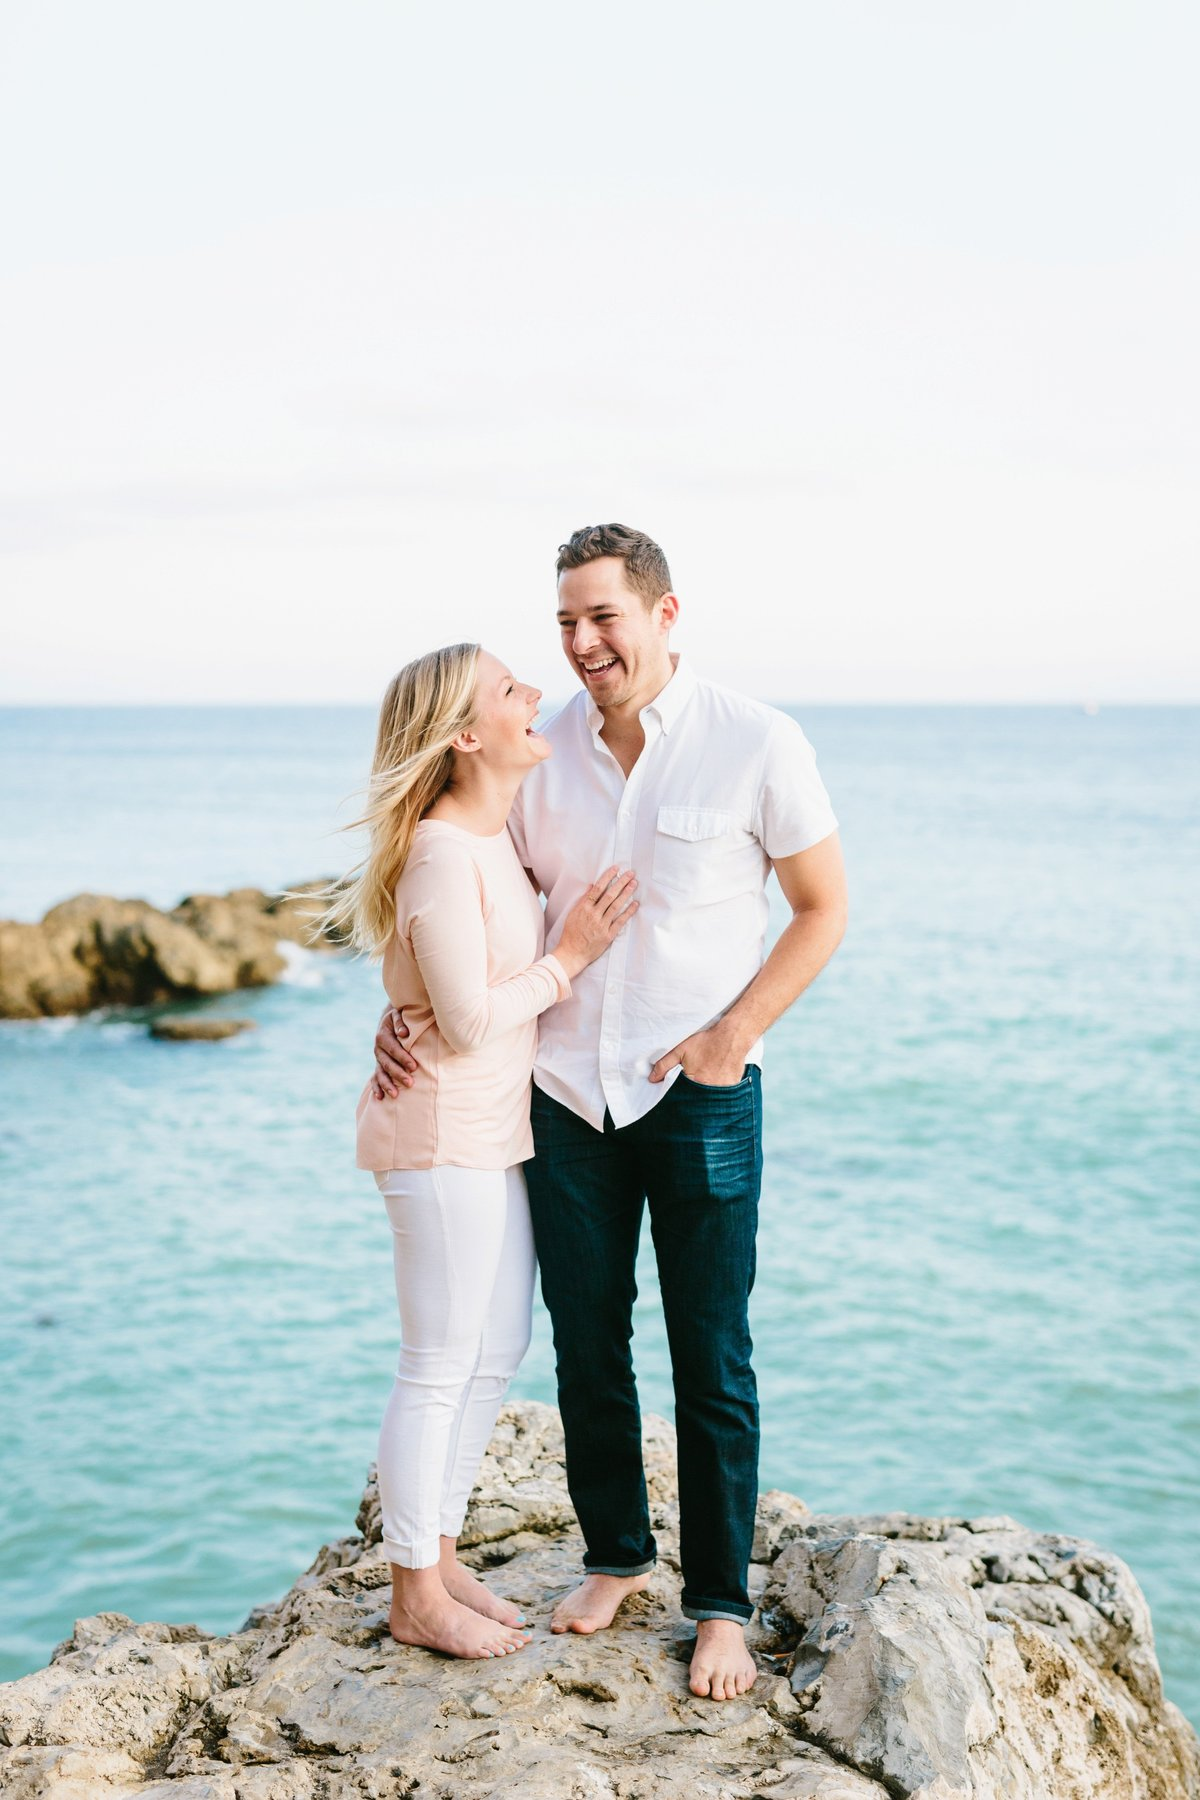 Best California Engagement Photographer-Jodee Debes Photography-171